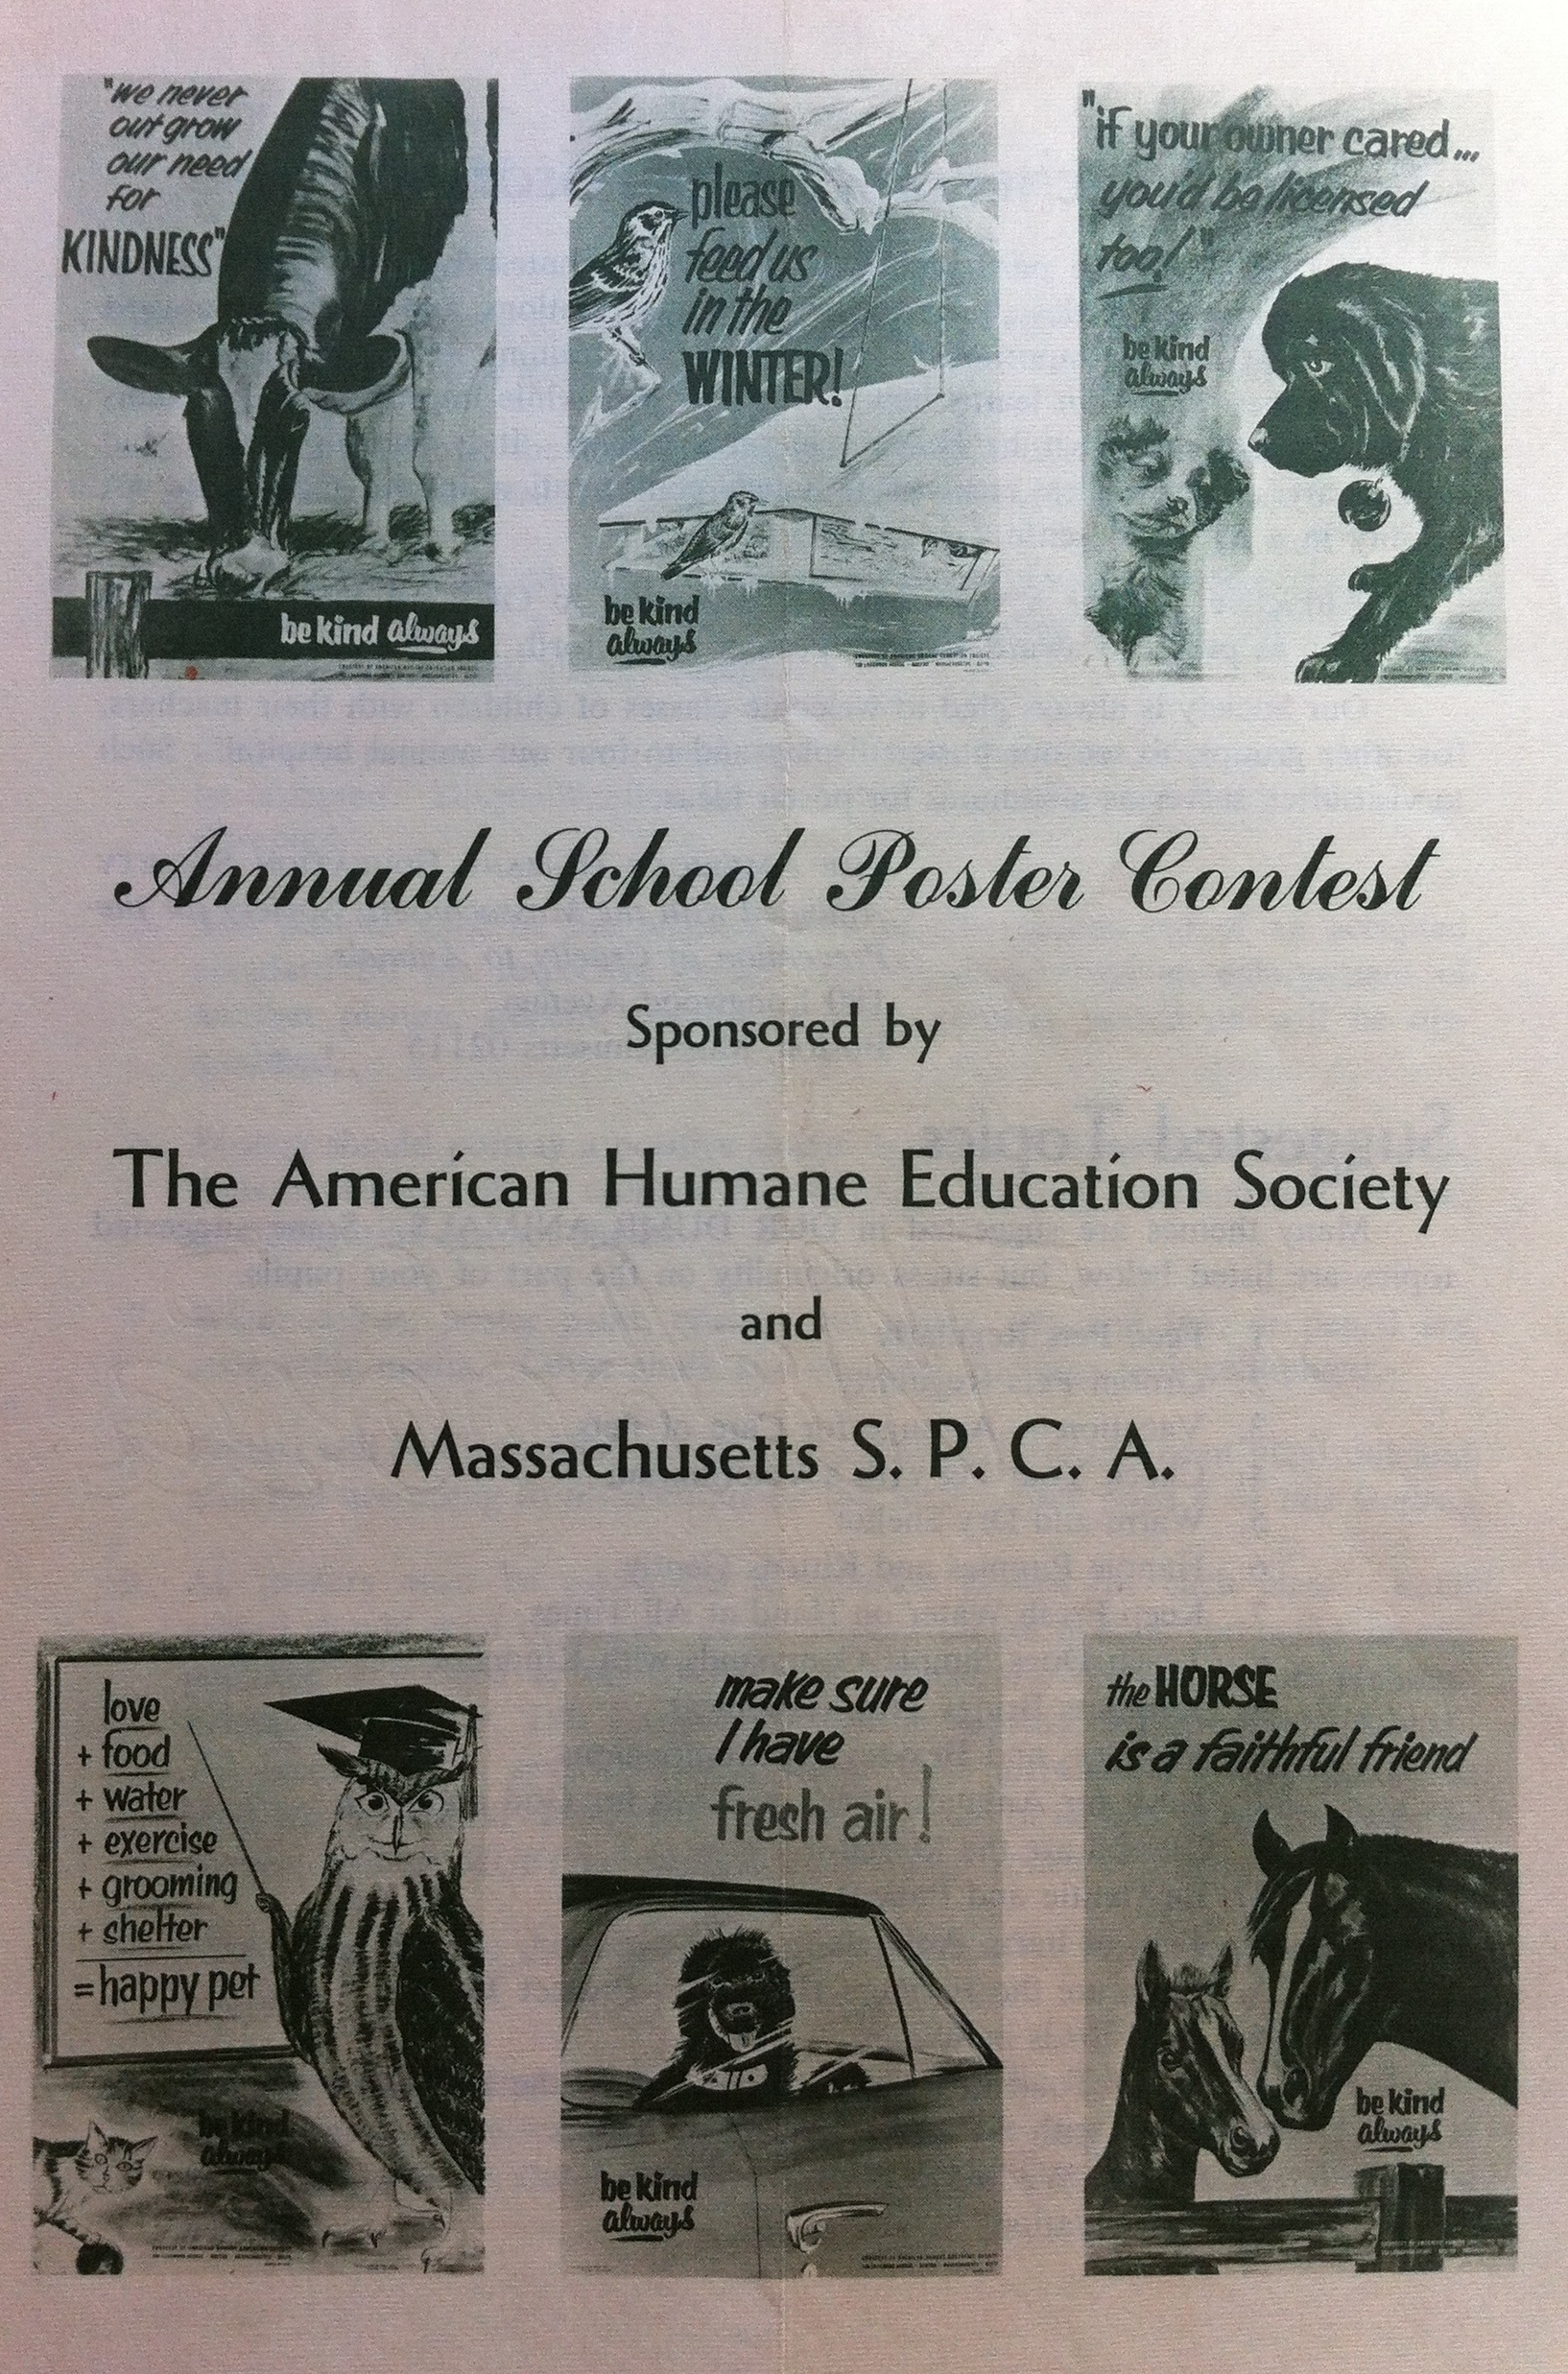 essay and poster competitions be kind a visual history of brochure for annual poster contest sponsored by the american humane education society